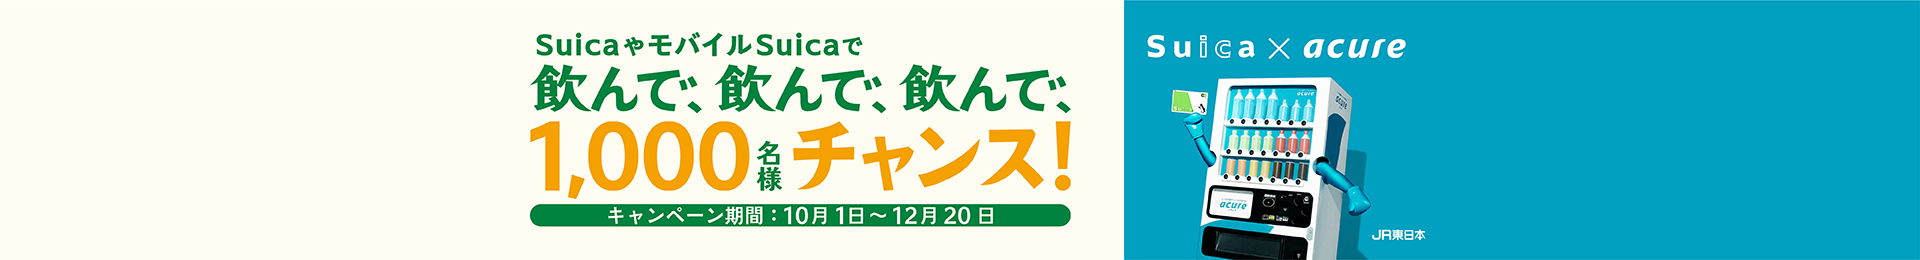 Suica × acure 「飲んで、飲んで、飲んで1,000名様チャンス!」キャンペーン